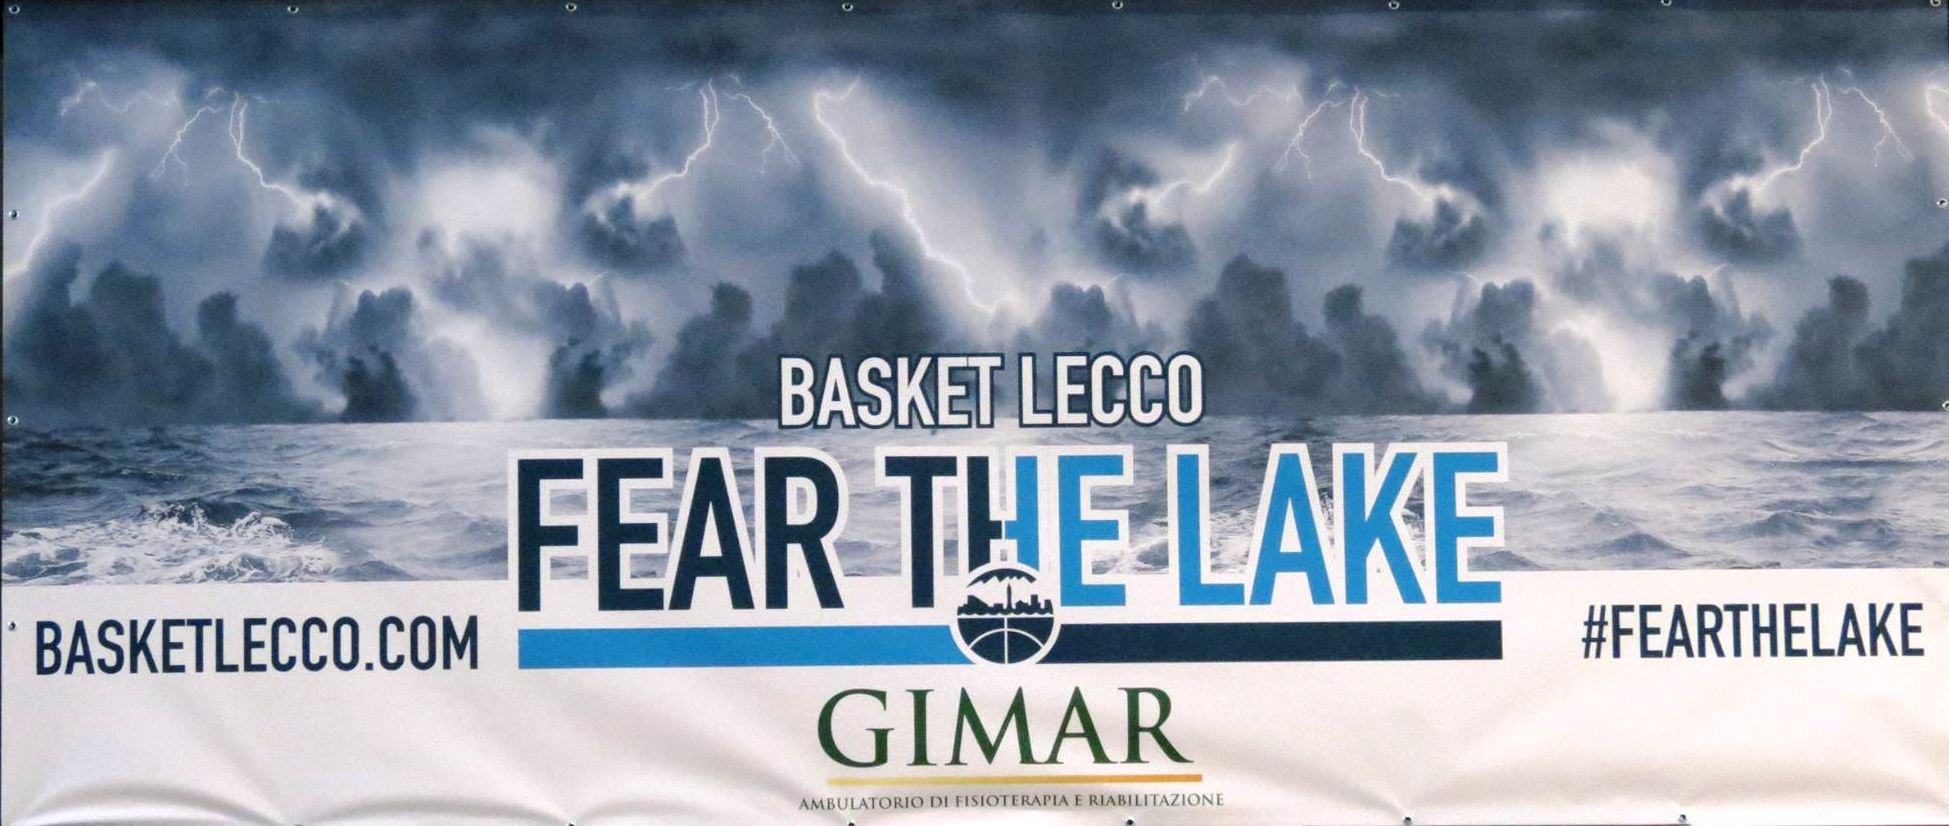 Basket Lecco fear the lake